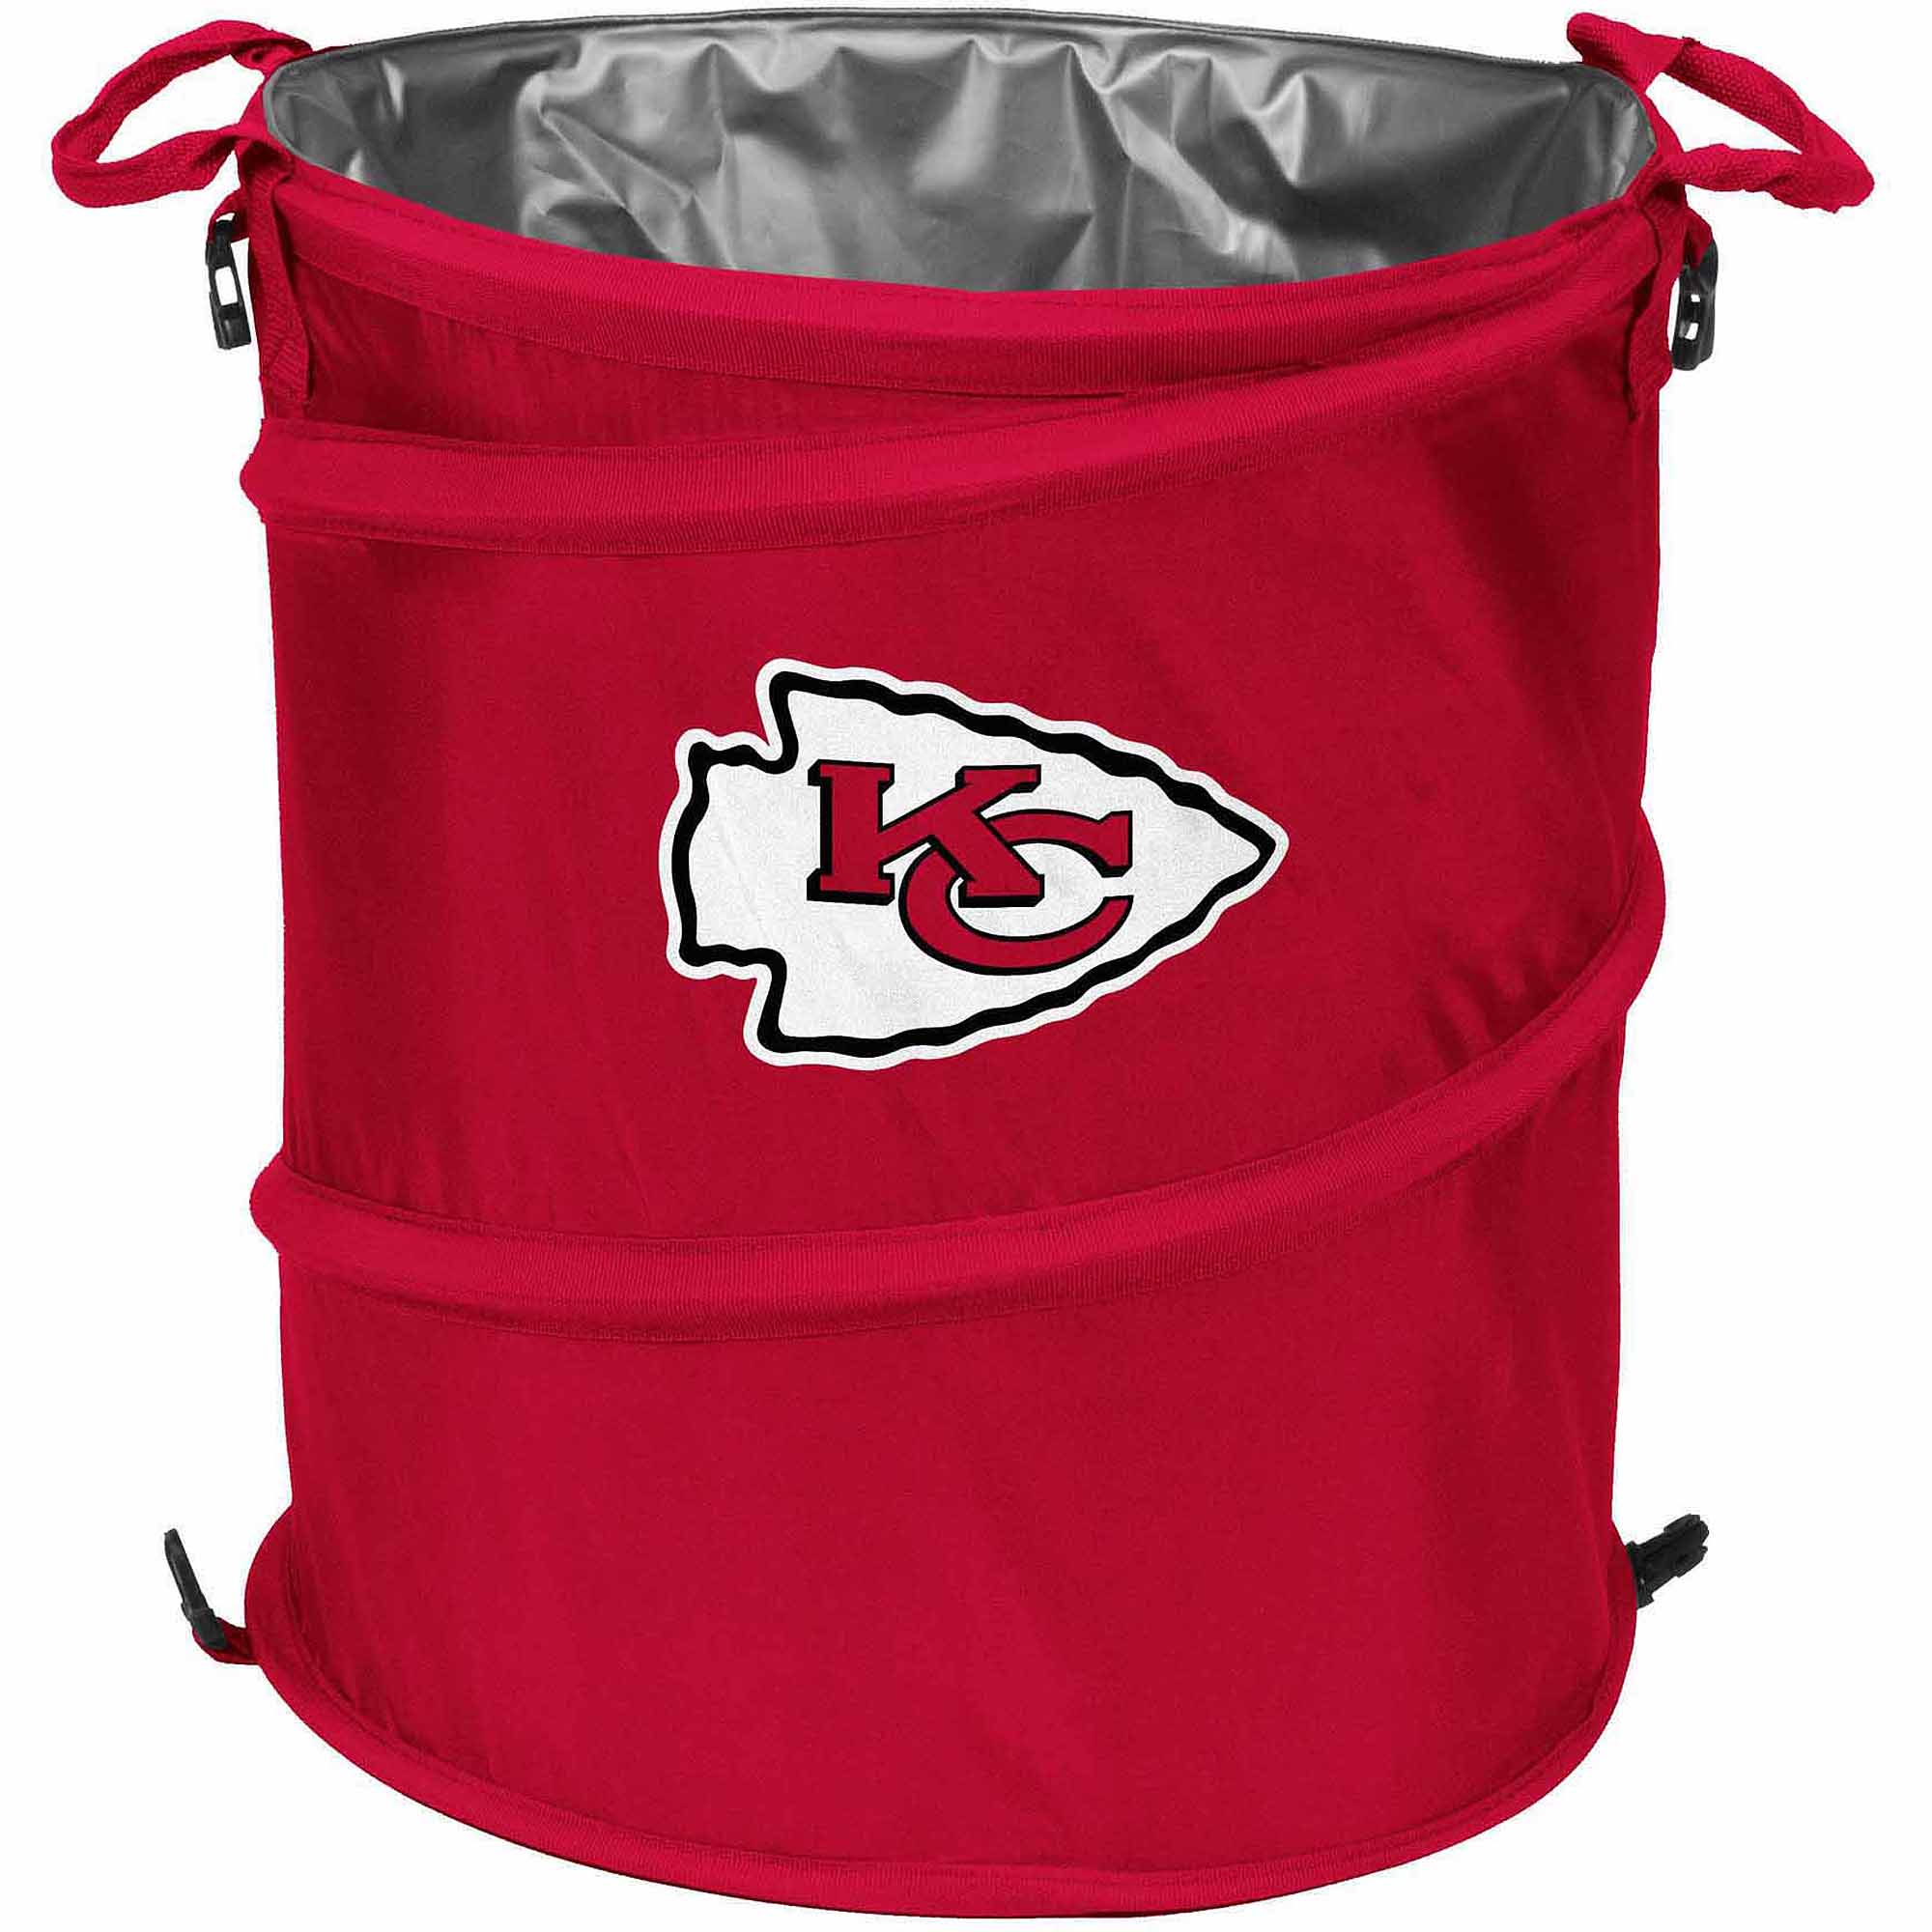 Kansas City Chiefs 3-in-1 Cooler